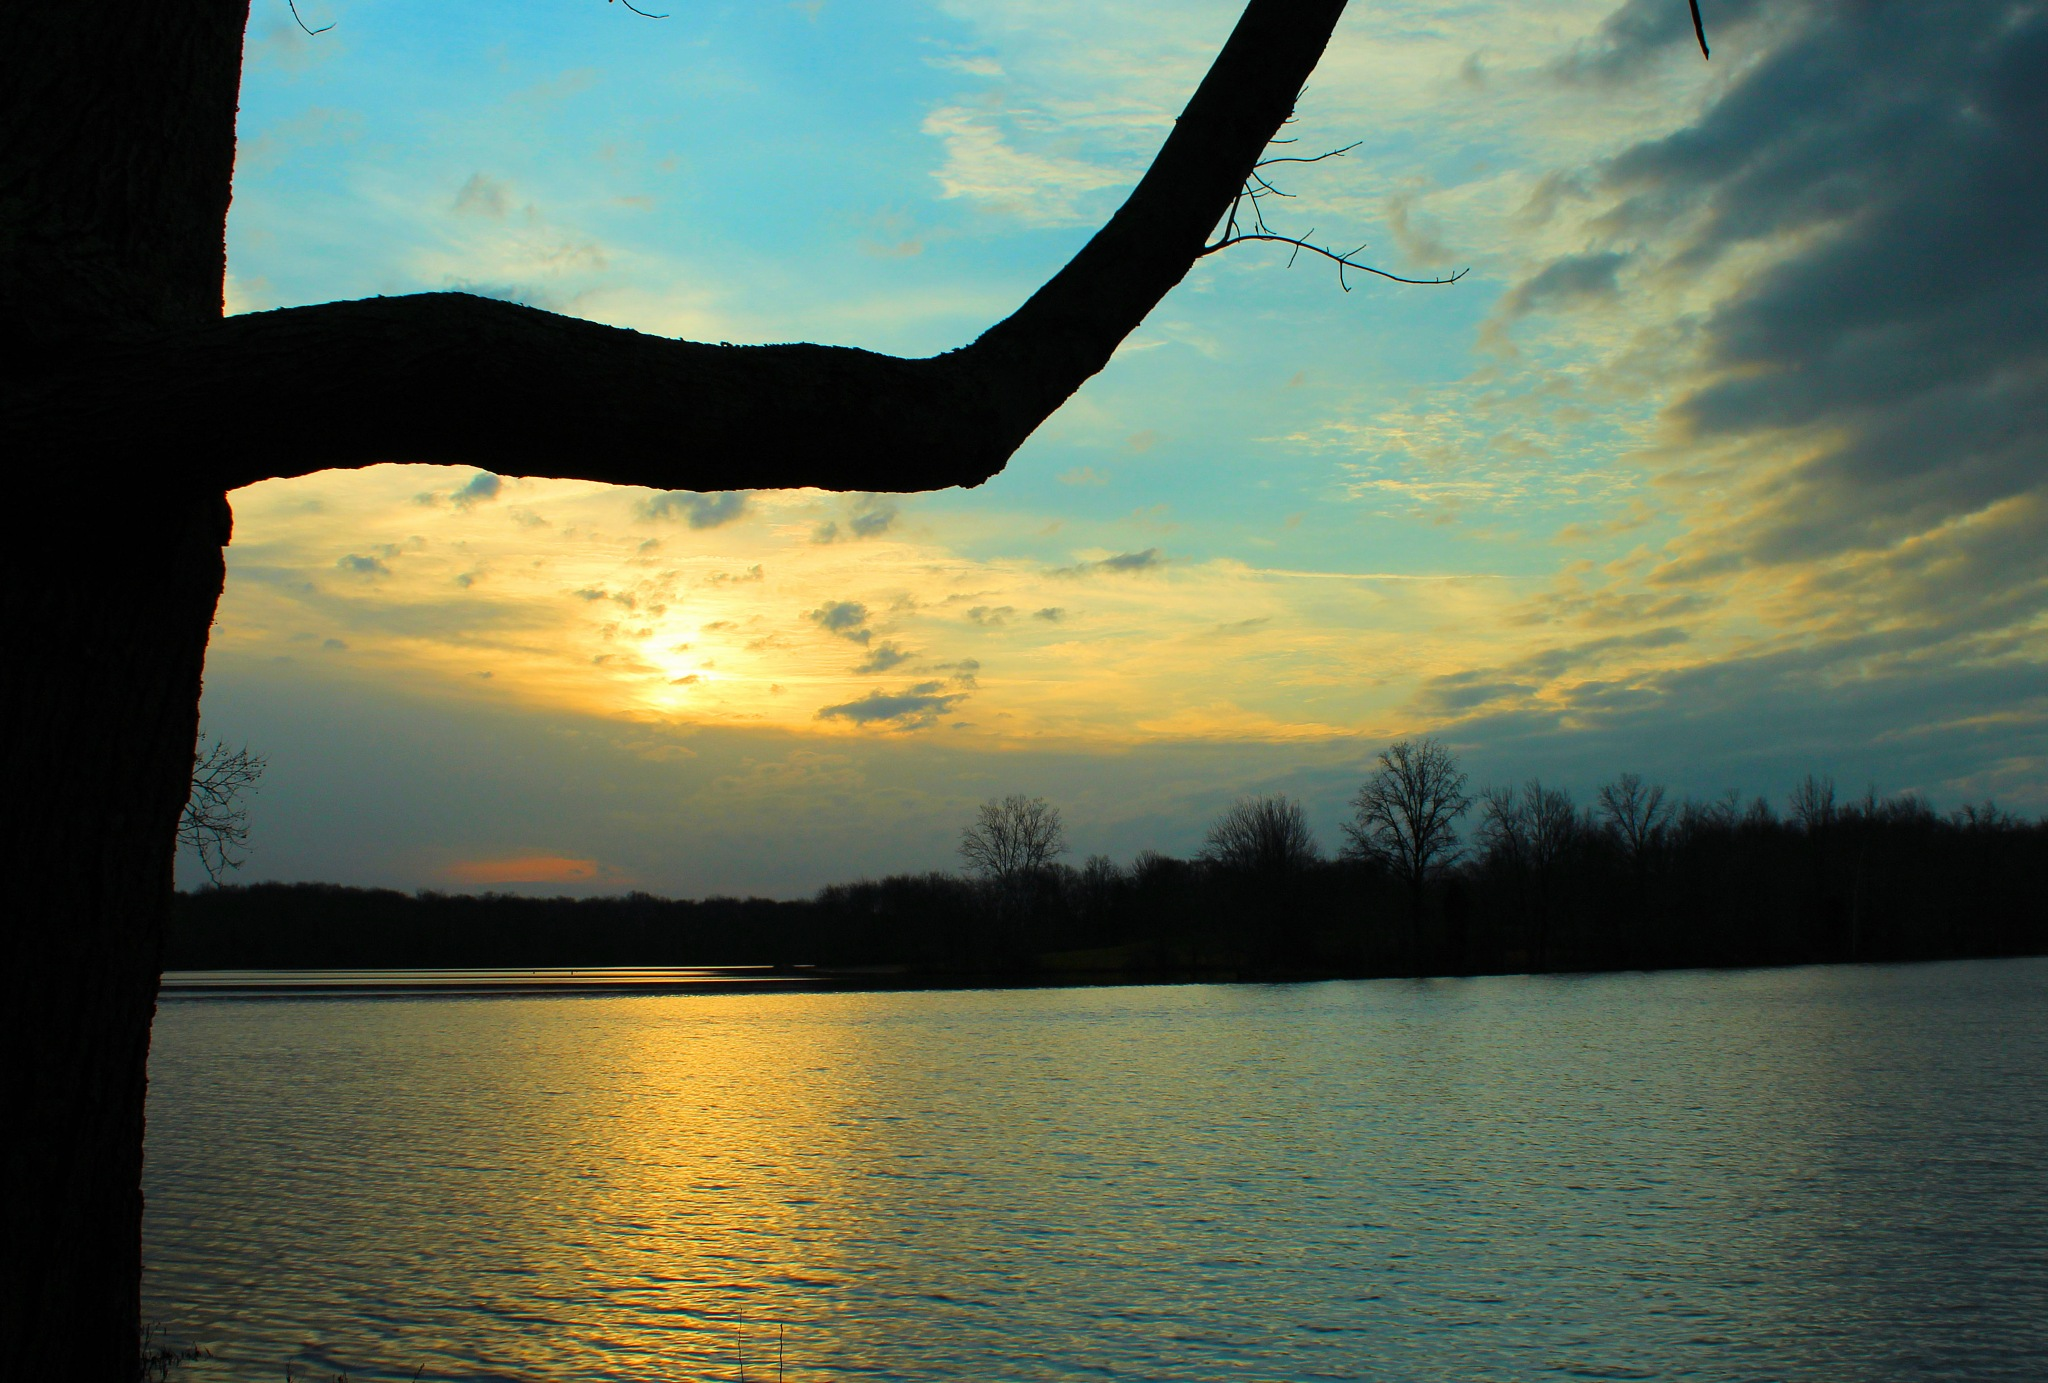 Early Morning over the Lake by sherry.laydaugherty